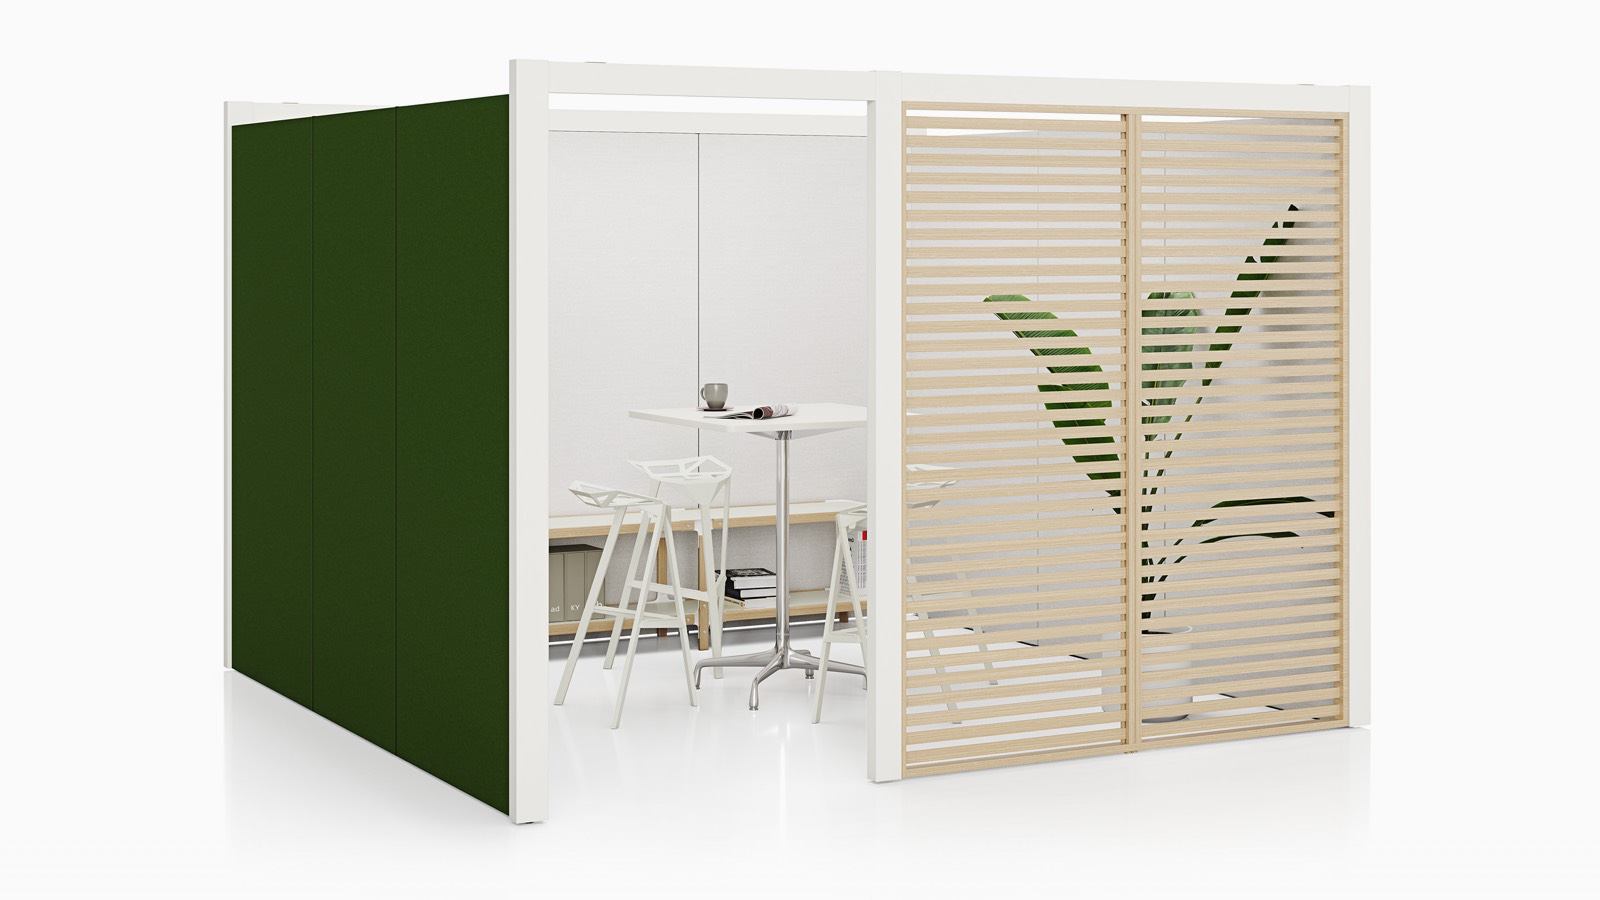 A semi-enclosed Overlay room with green tackable fabric and birch wood slat exterior walls with three stools and a table inside.